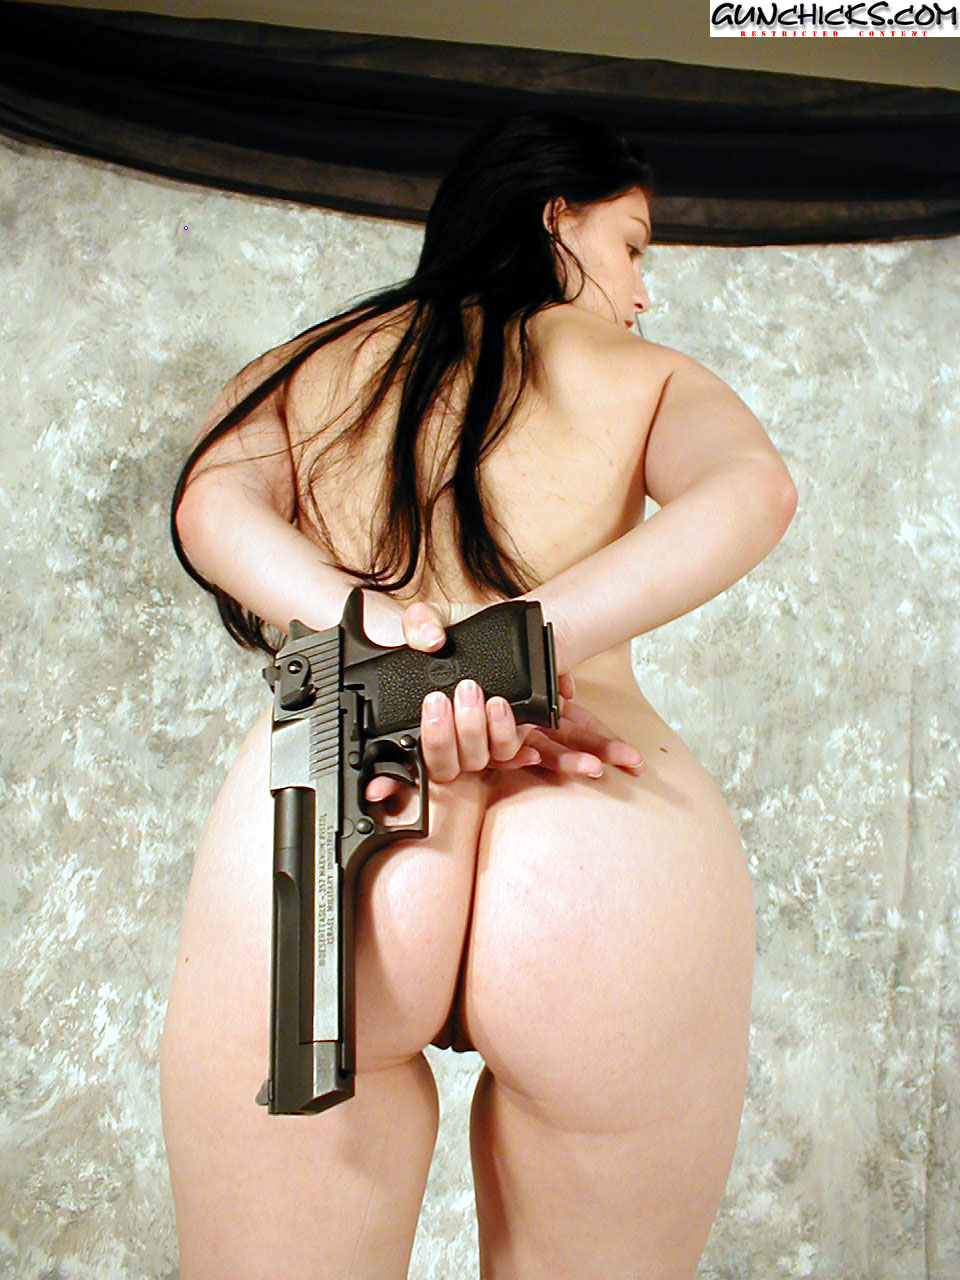 Sons of guns girl nude